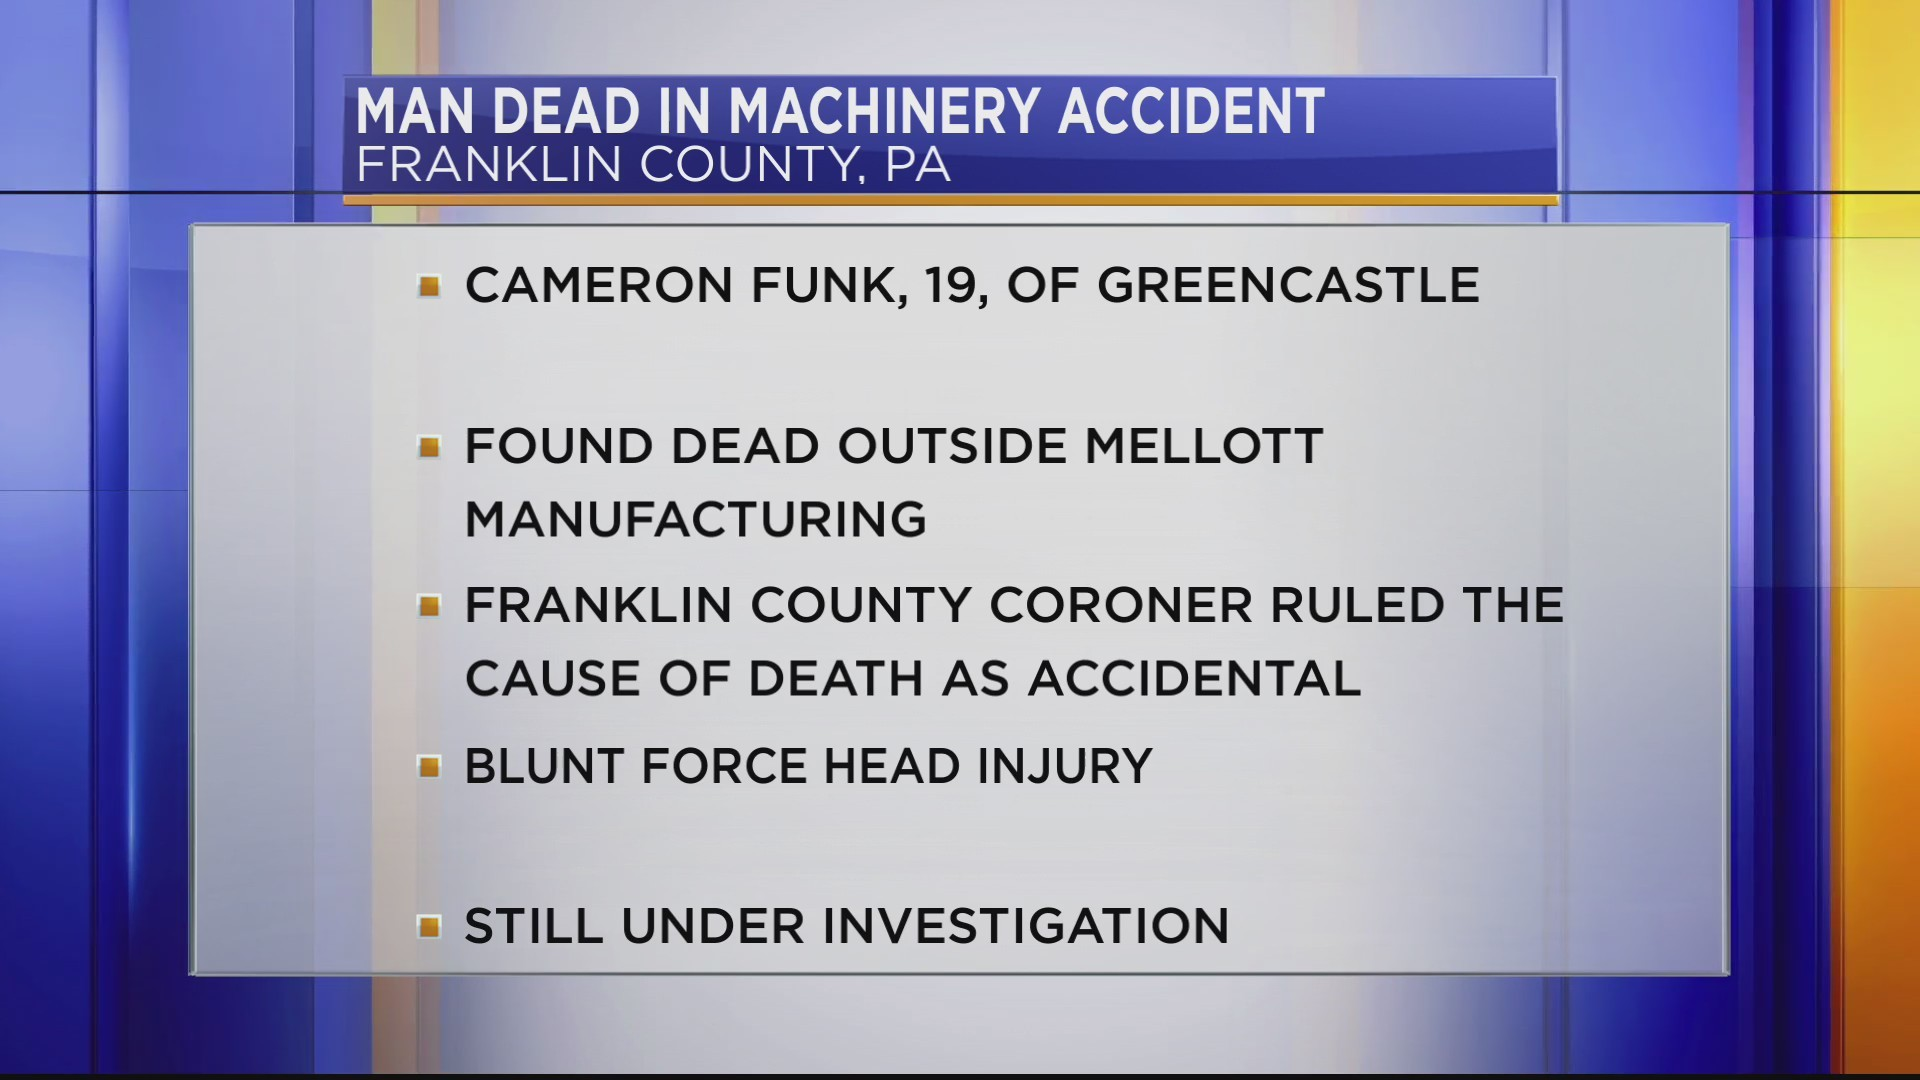 Greencastle man died in a machinery accident